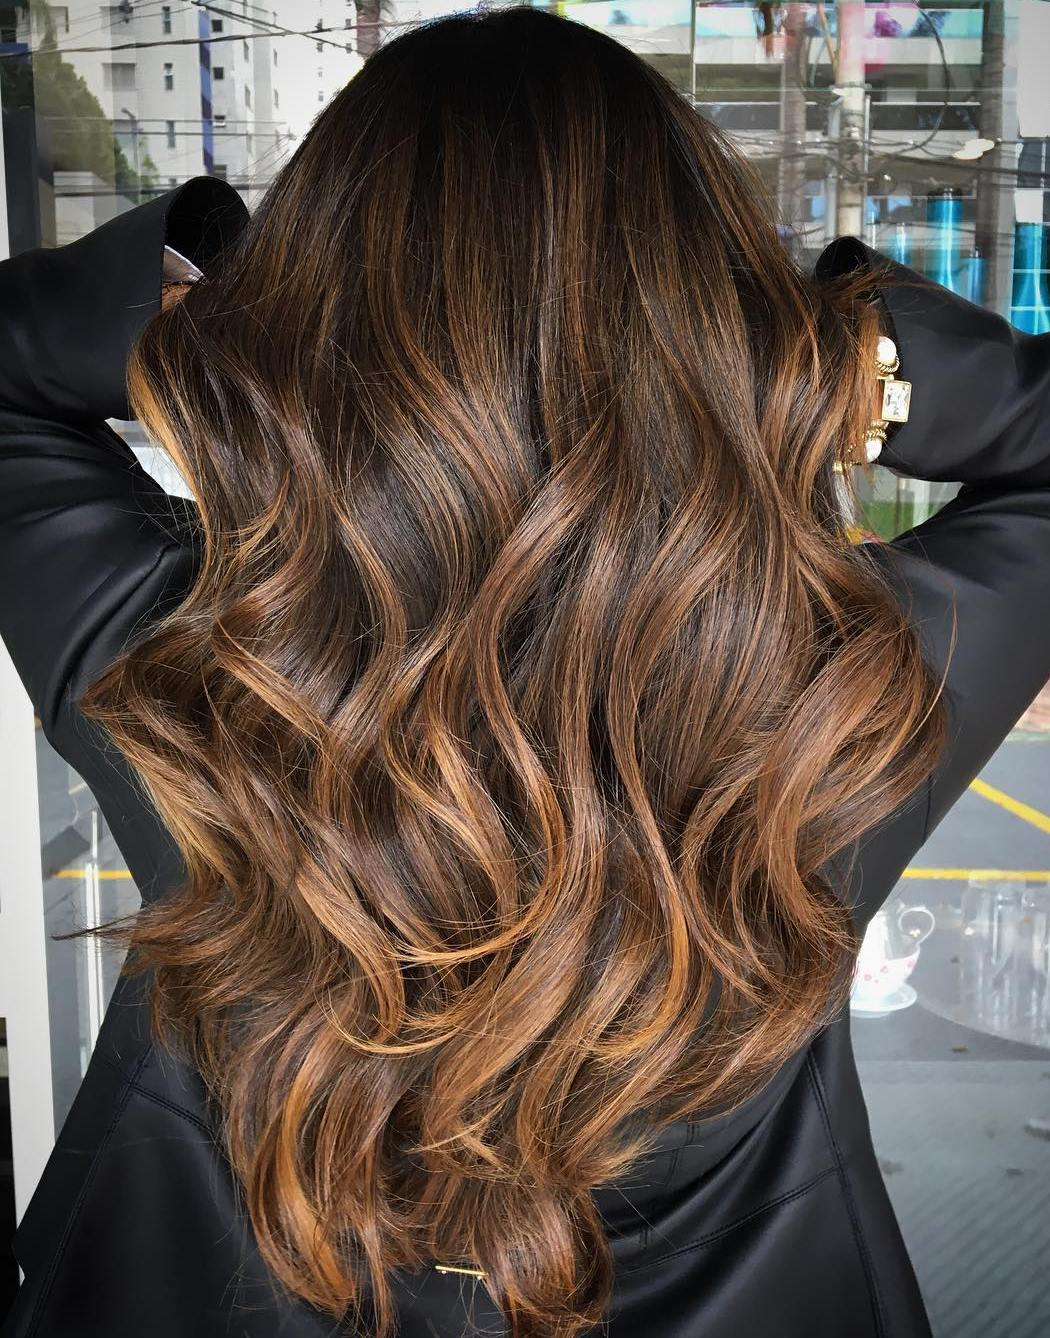 7-long-caramel-balayage-for-brunettes